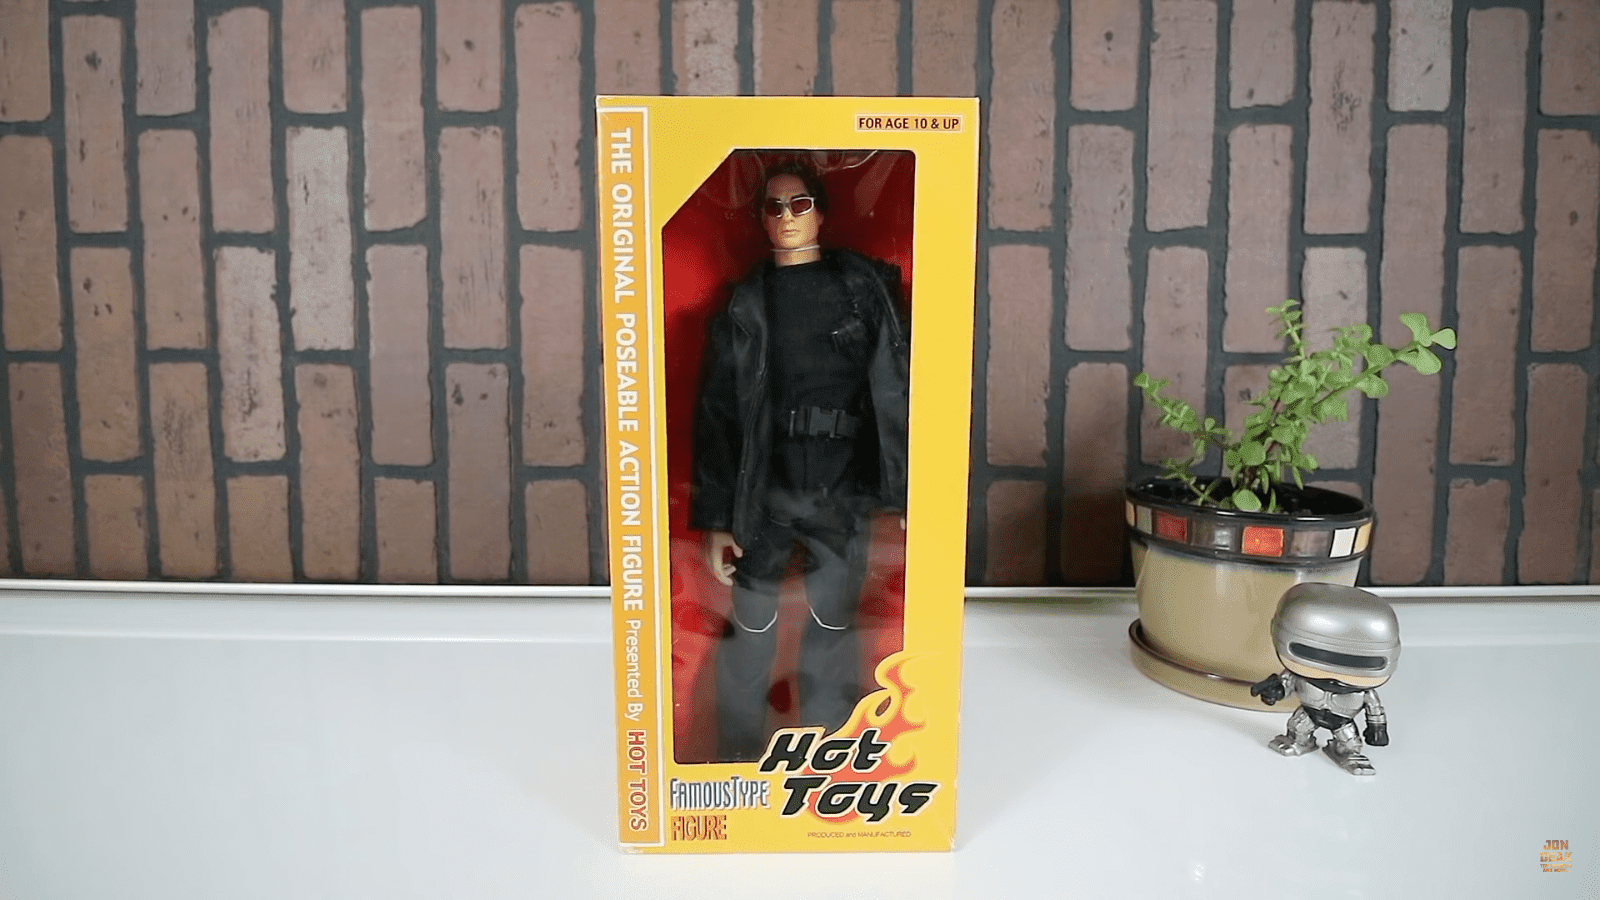 Hot Toys Mission Impossible Tom Cruise Famous Type Figure Image 2